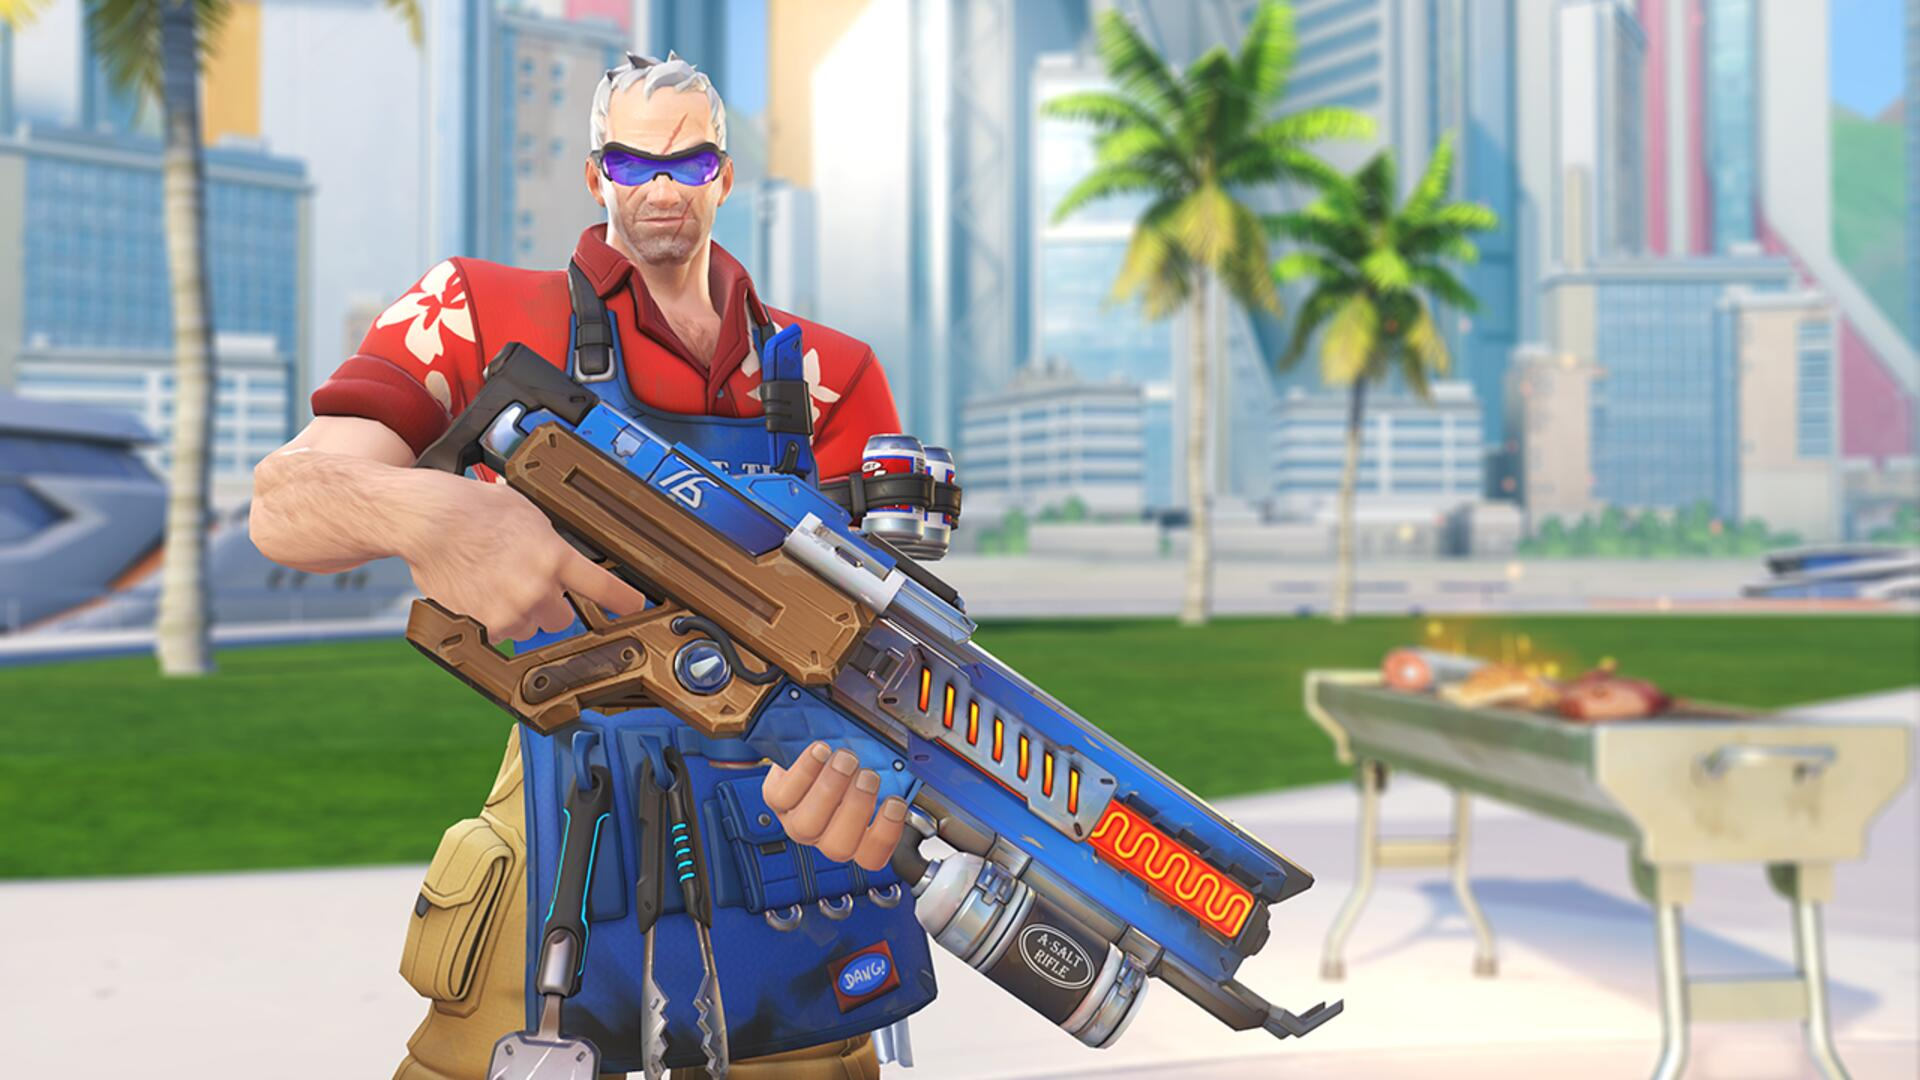 Overwatch Could be Coming to Nintendo Switch, If This Suspicious Amazon Listing is Anything to Go By